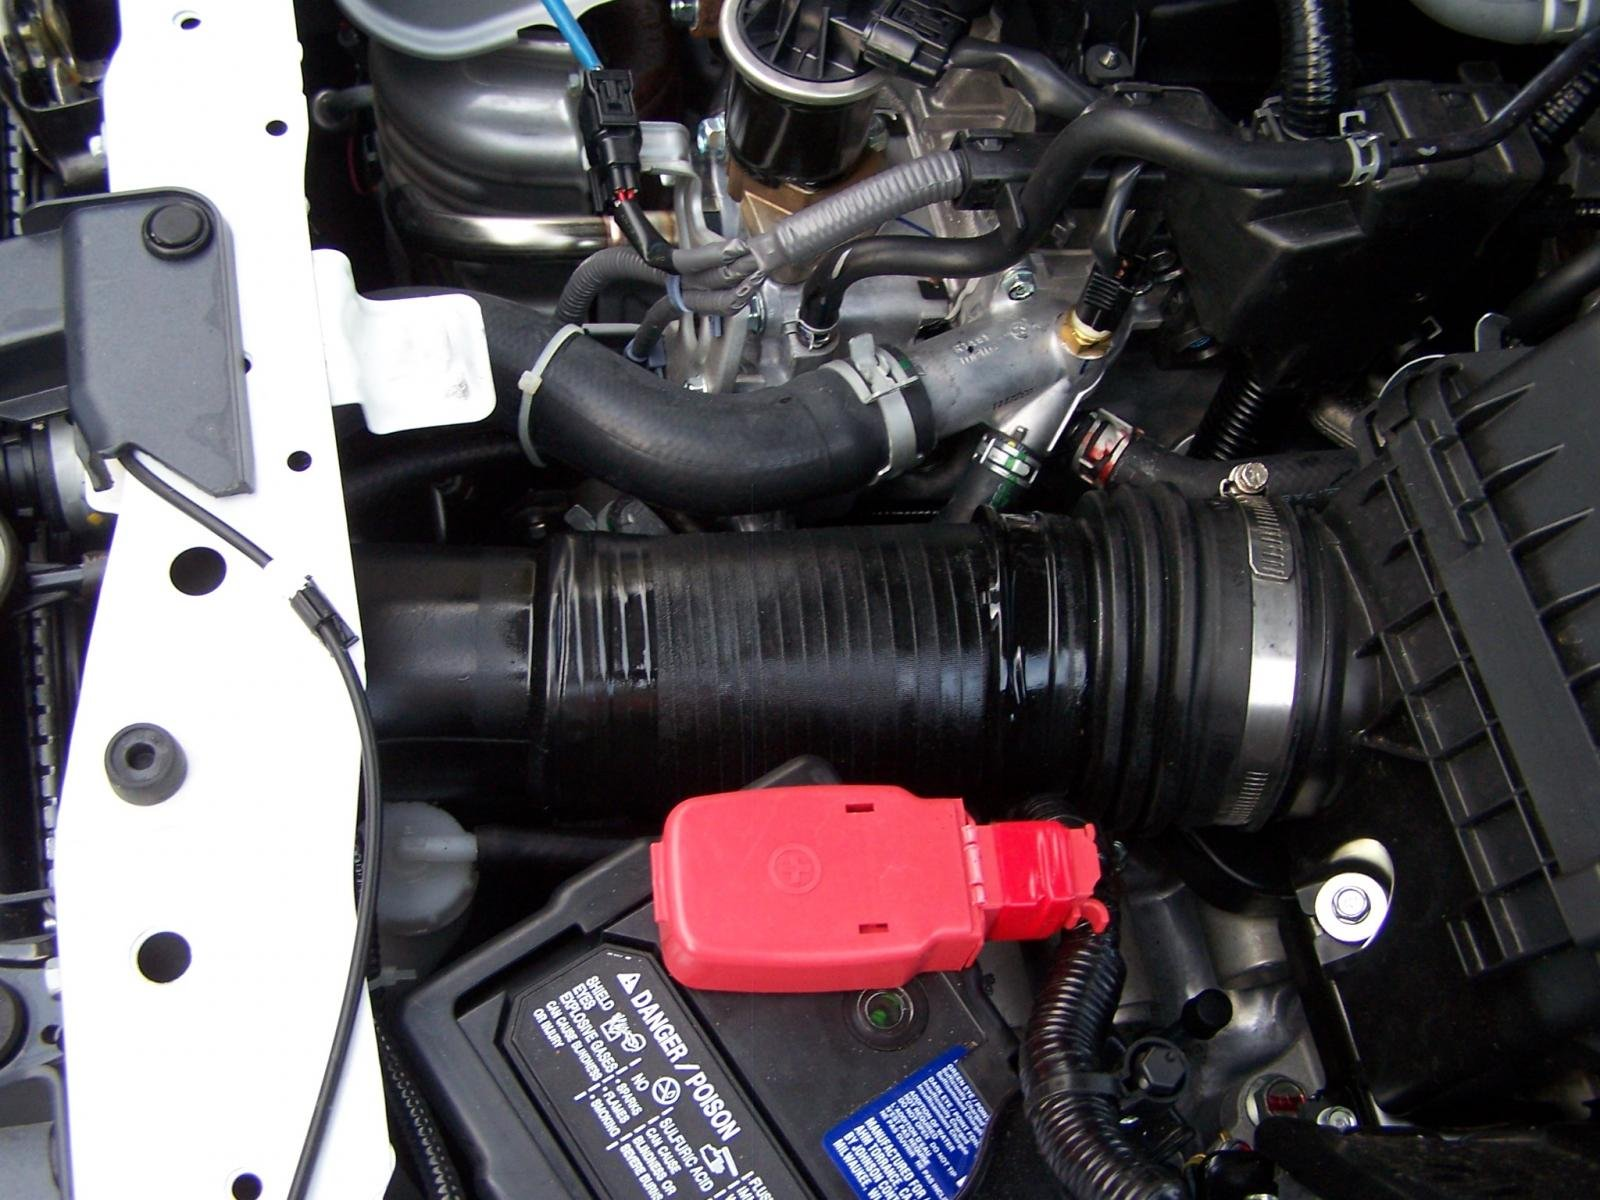 Intake resonator delete (sound)-000_0292.jpg